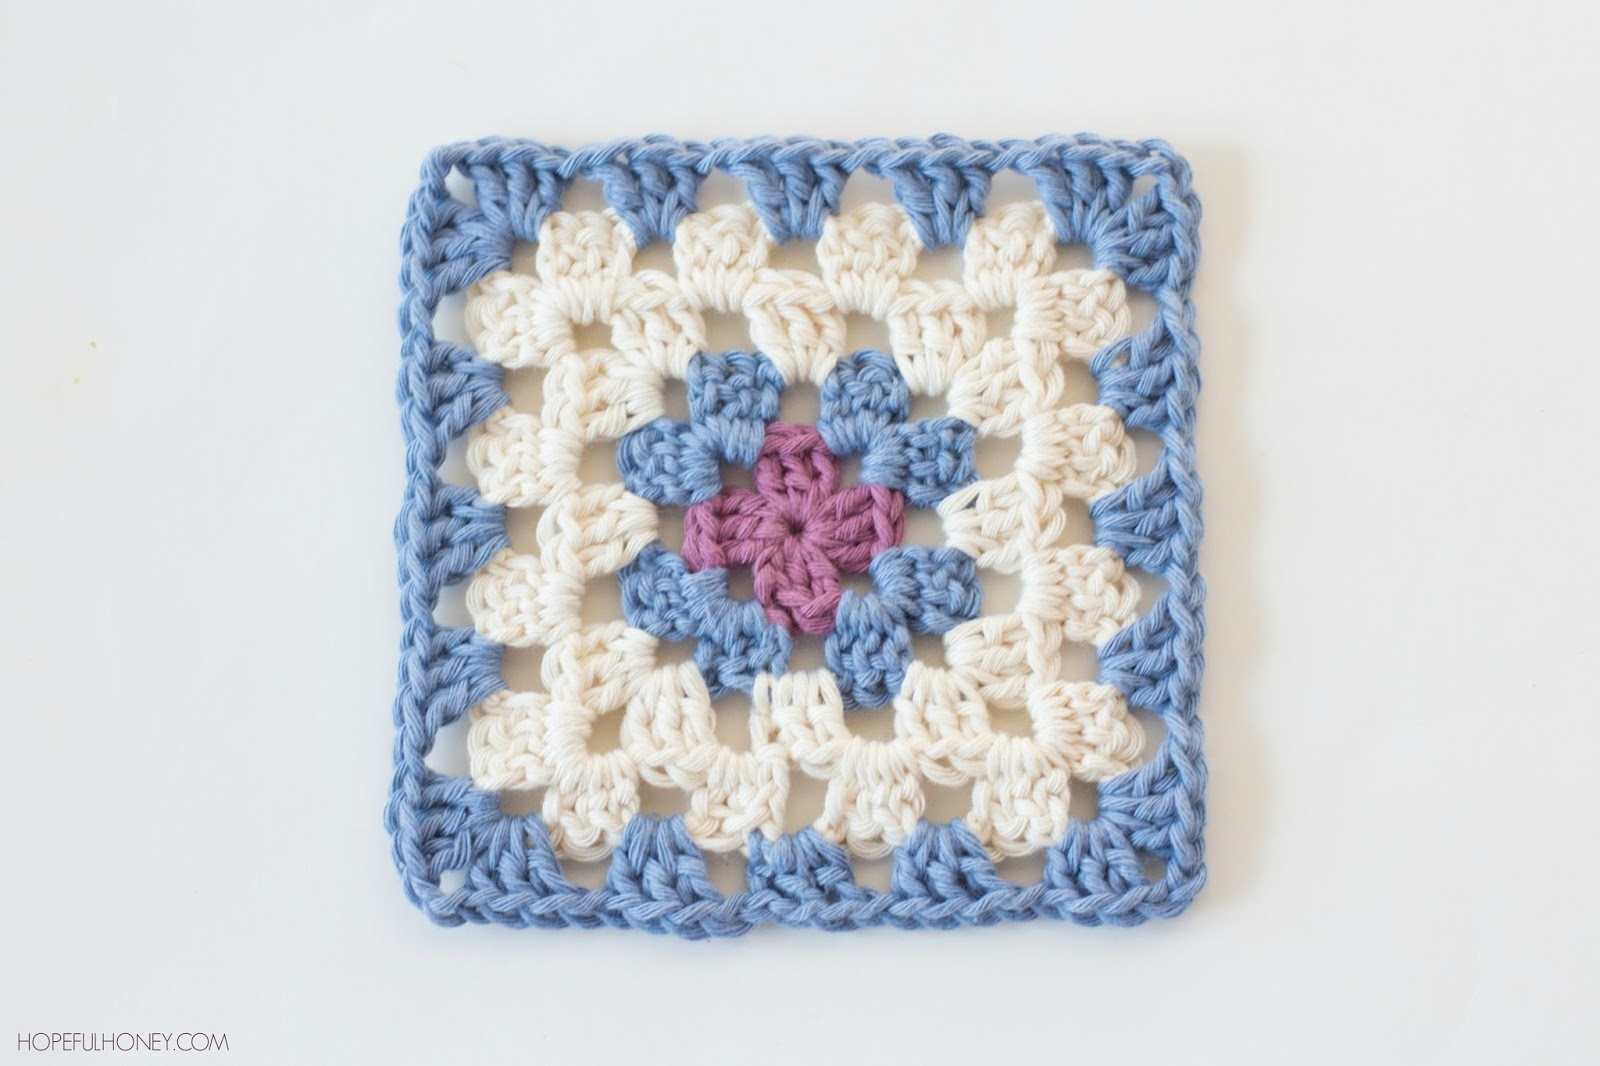 Crochet Granny Square Pattern : ... Craft, Crochet, Create: Classic Granny Square - Free Crochet Pattern